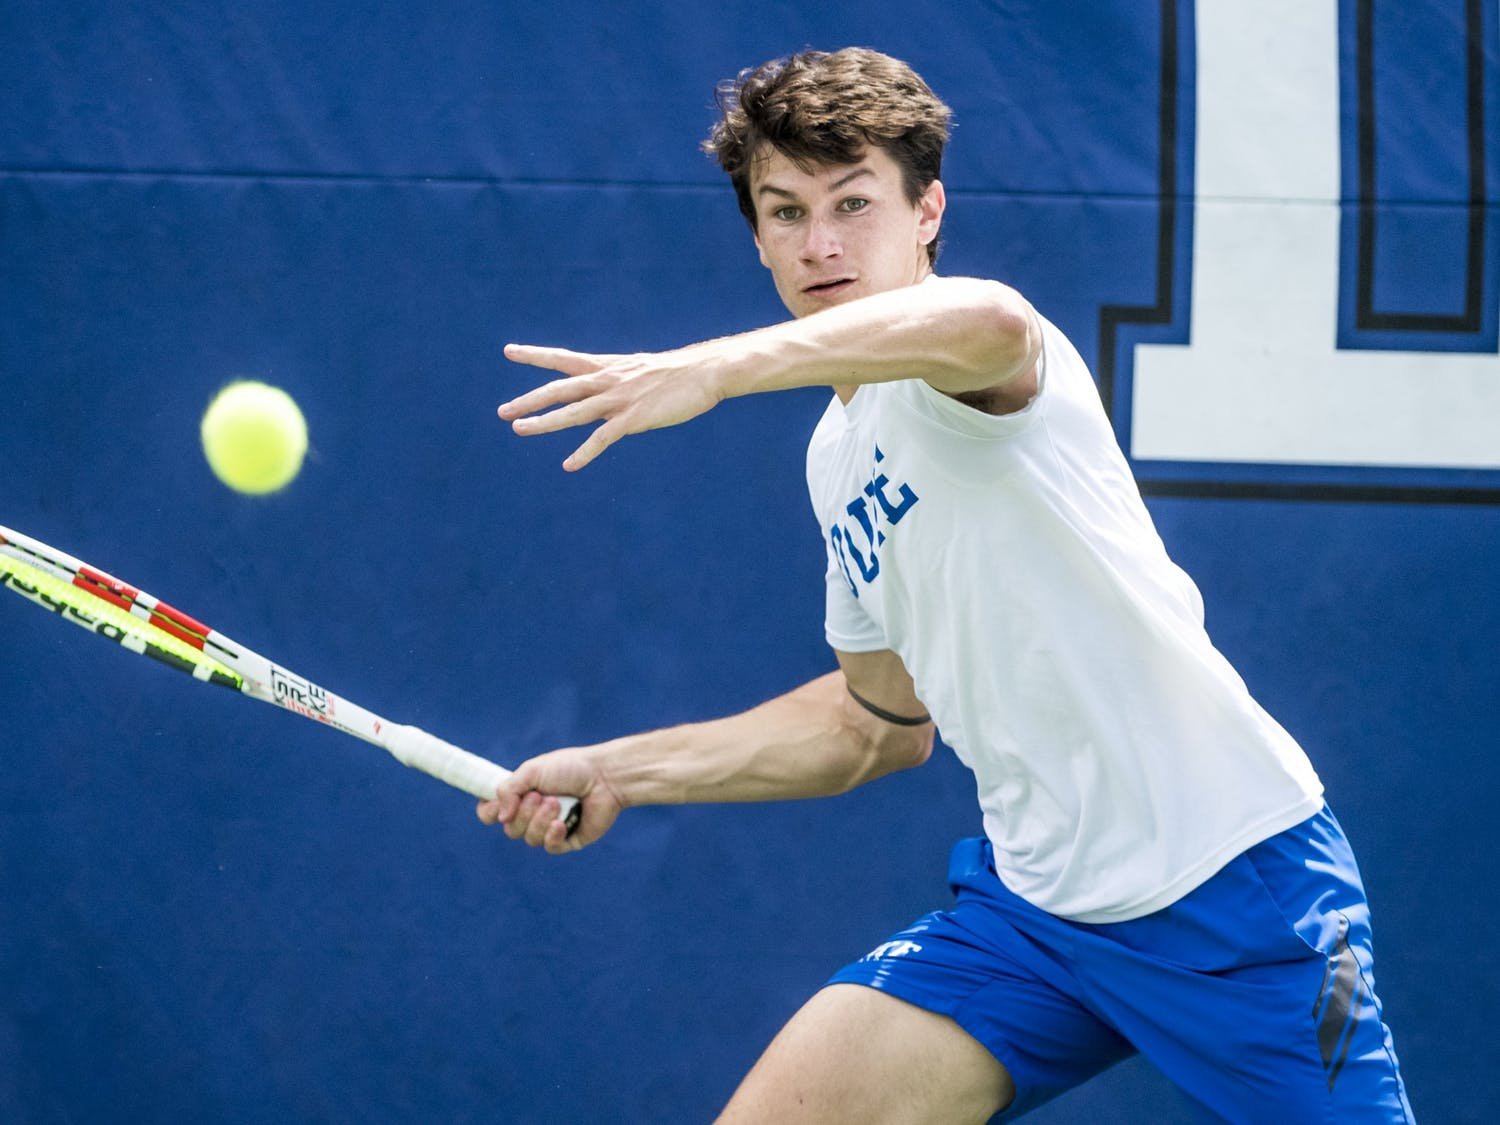 Sophomore Garrett Johns faced off against Henri Squire, who is the No. 13 college singles player in the nation.